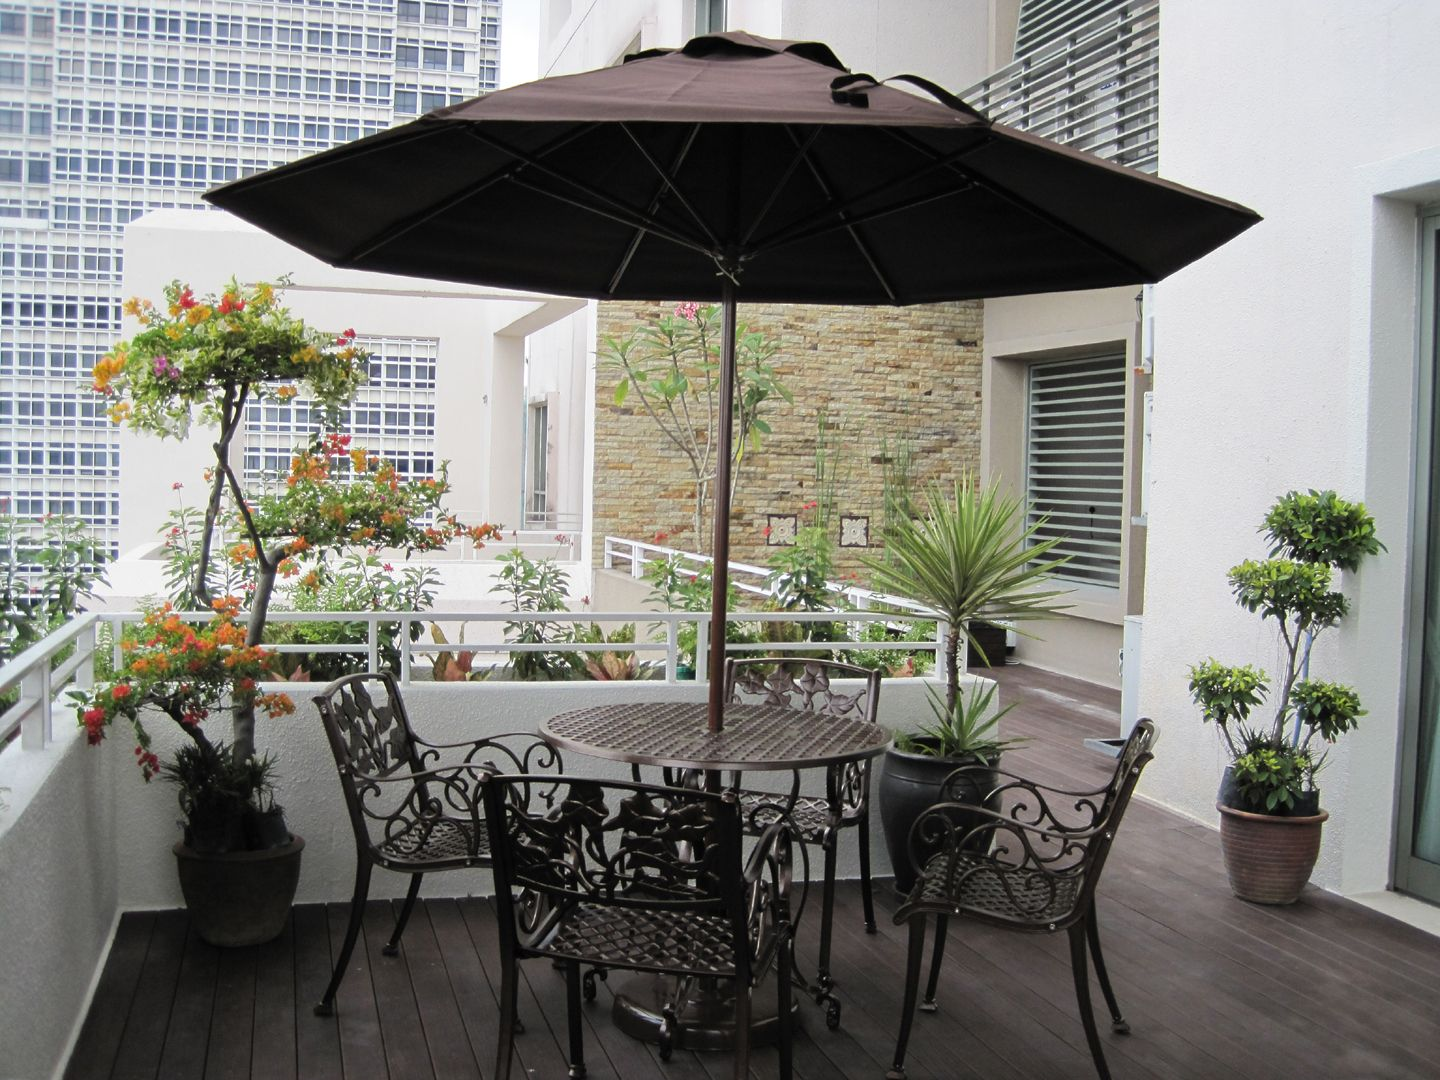 Balcony furniture ideas - Awesome Elegant Balcony Deck Design Inspirations Awesome Elegant Balcony Deck Design With Black Chair And Modern Umbrella Designa Nd Green